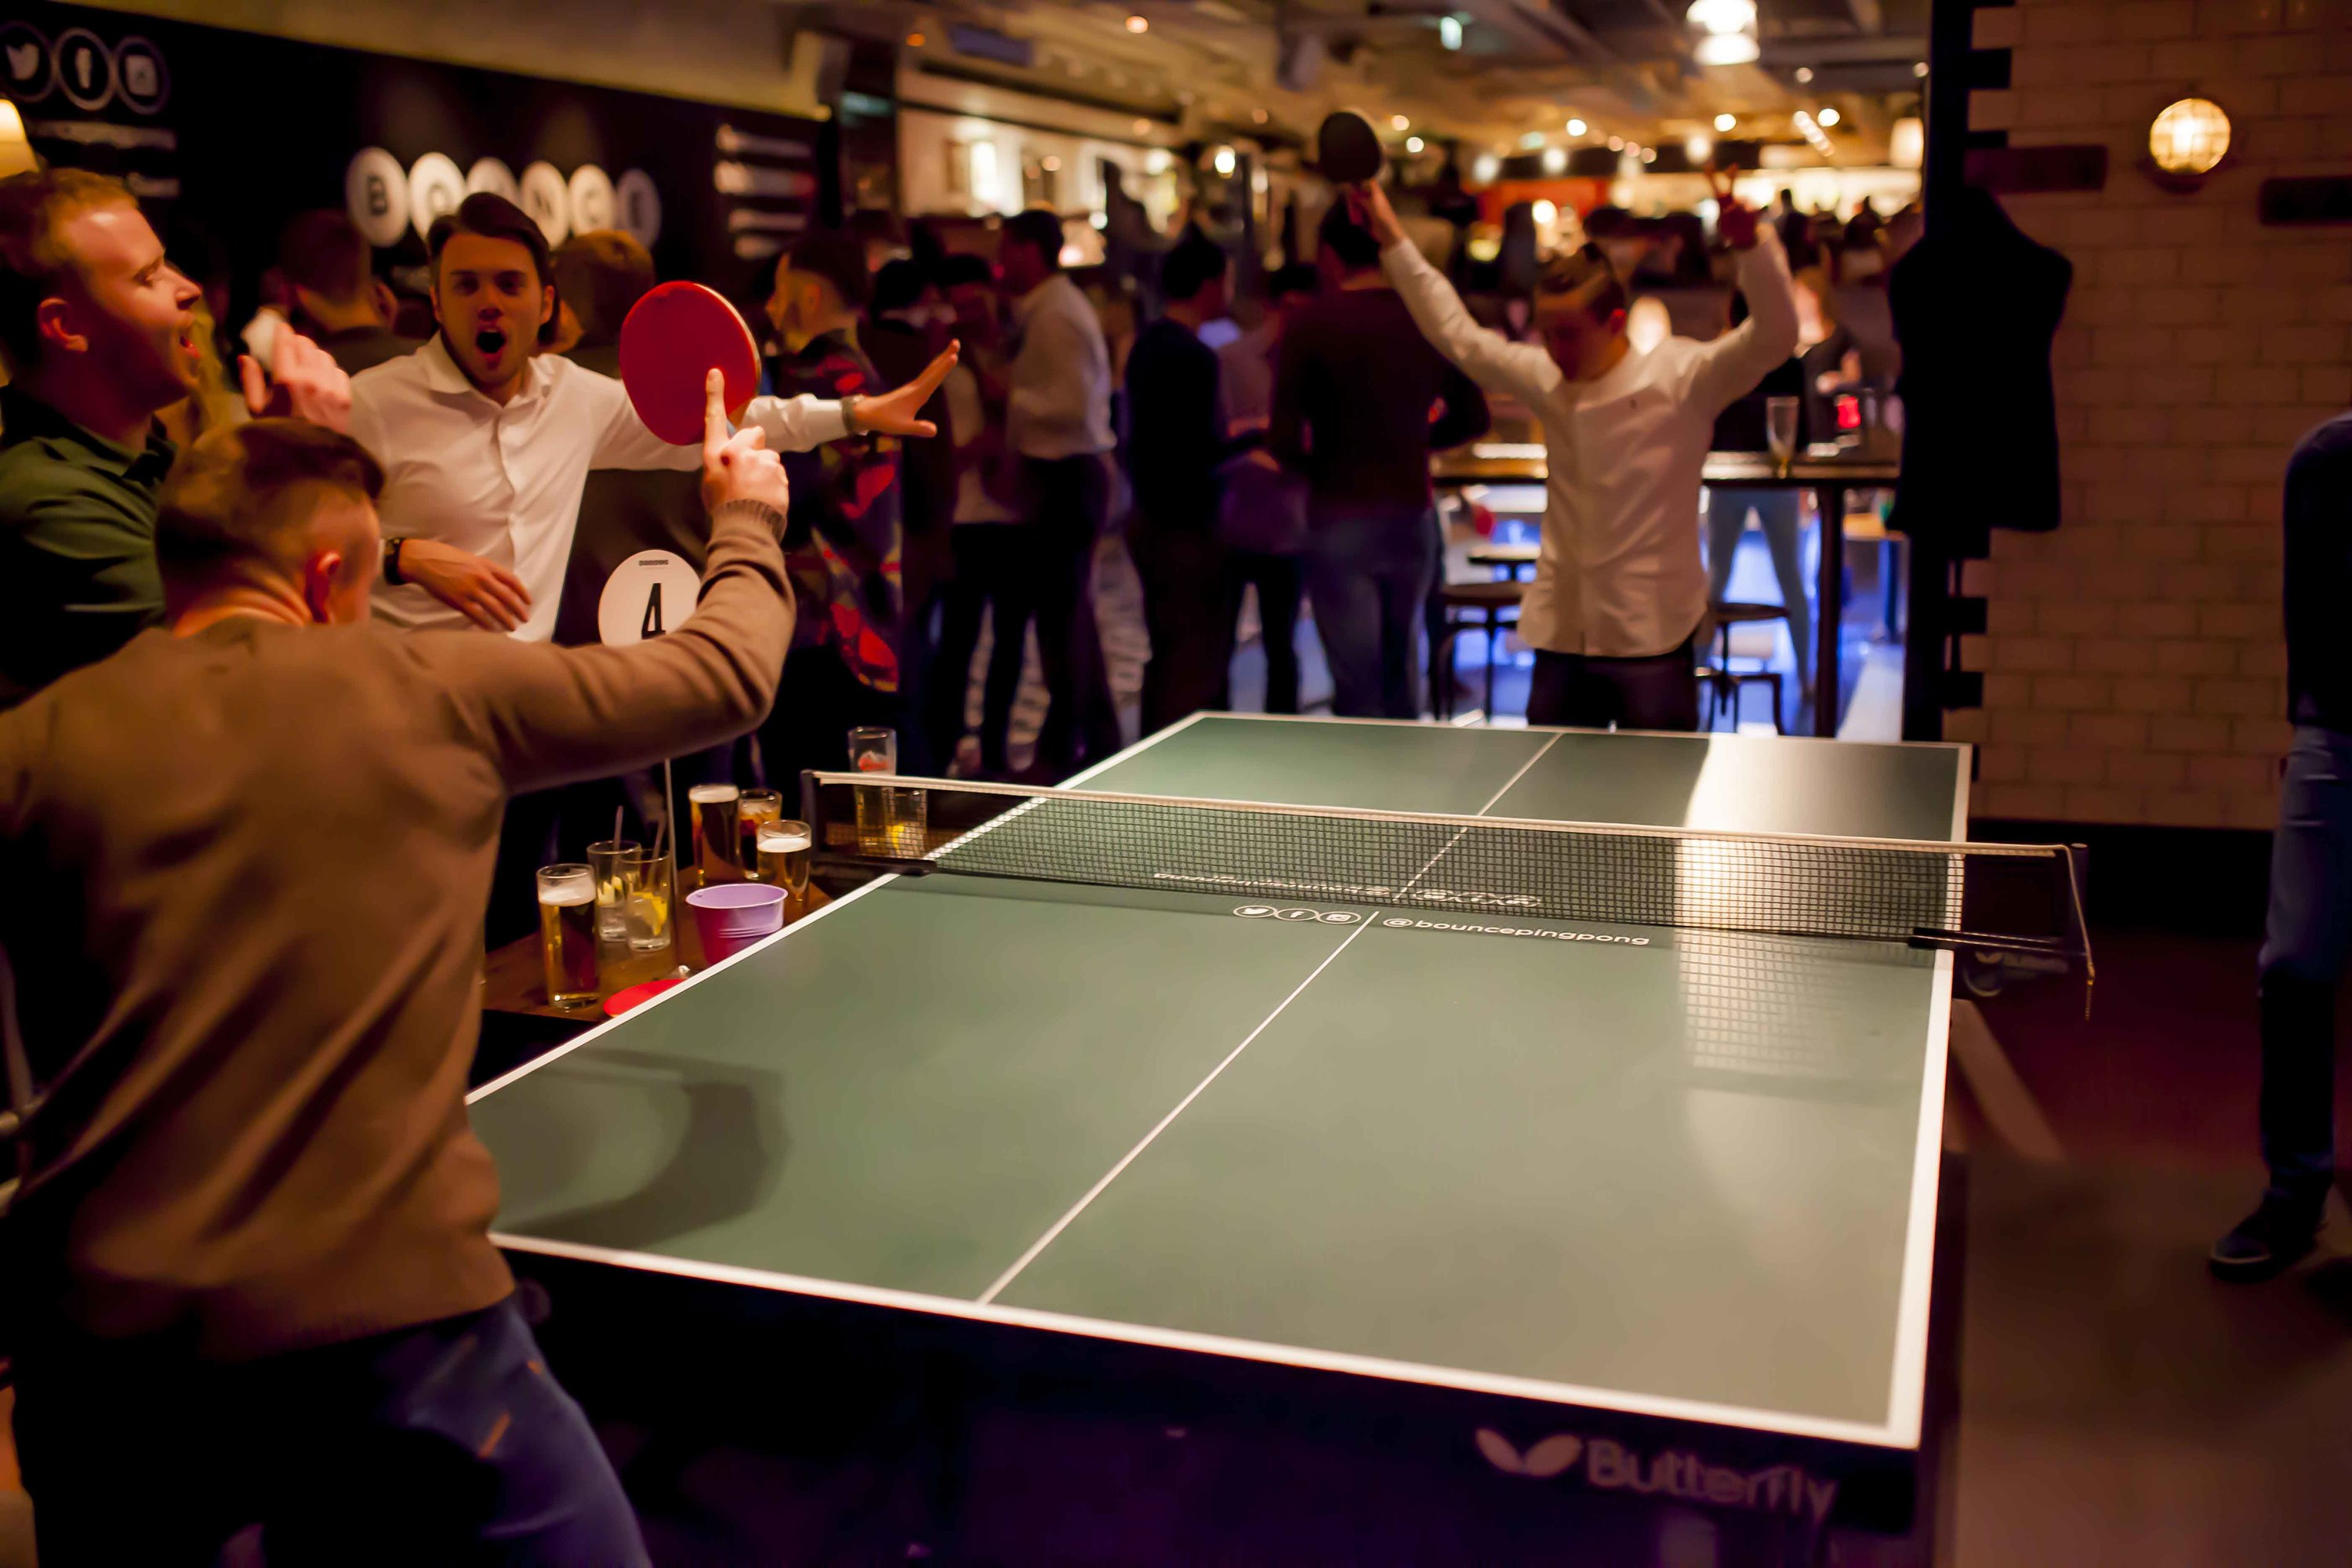 London Pubs With Games Bars And Pubs Time Out London